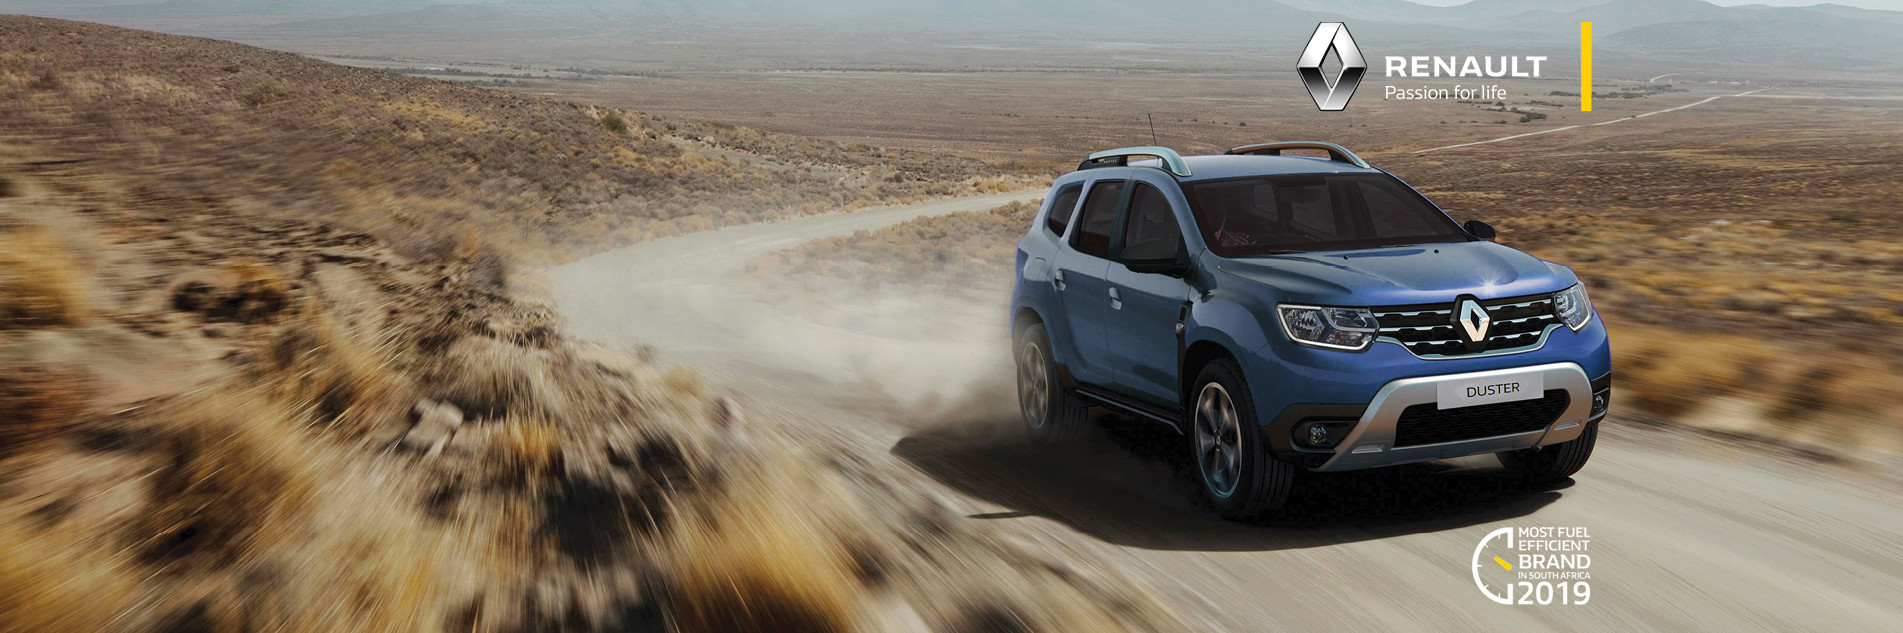 Test Drive the new Renault Duster